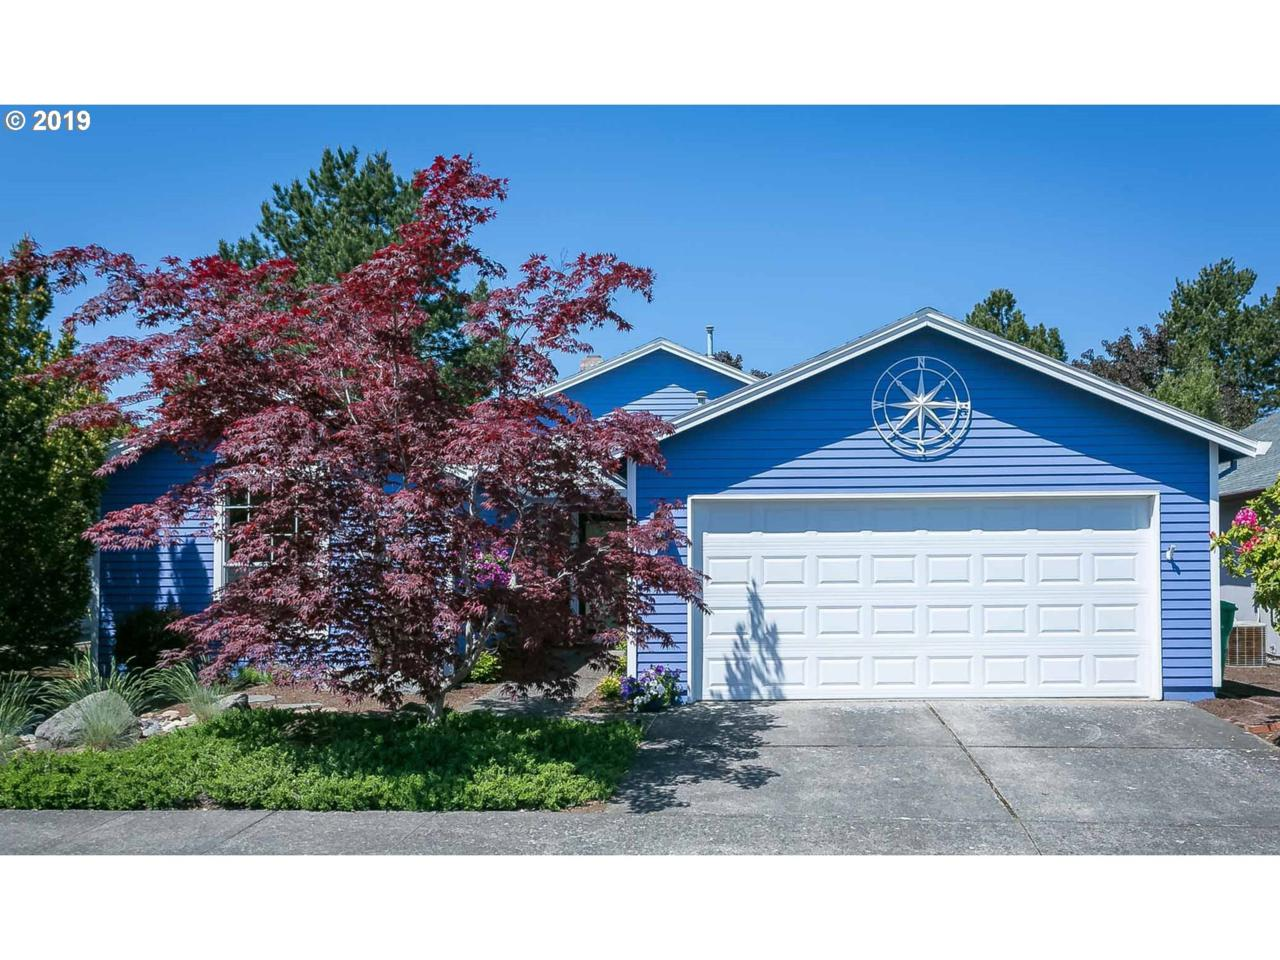 15201 Summerplace Dr - Photo 1